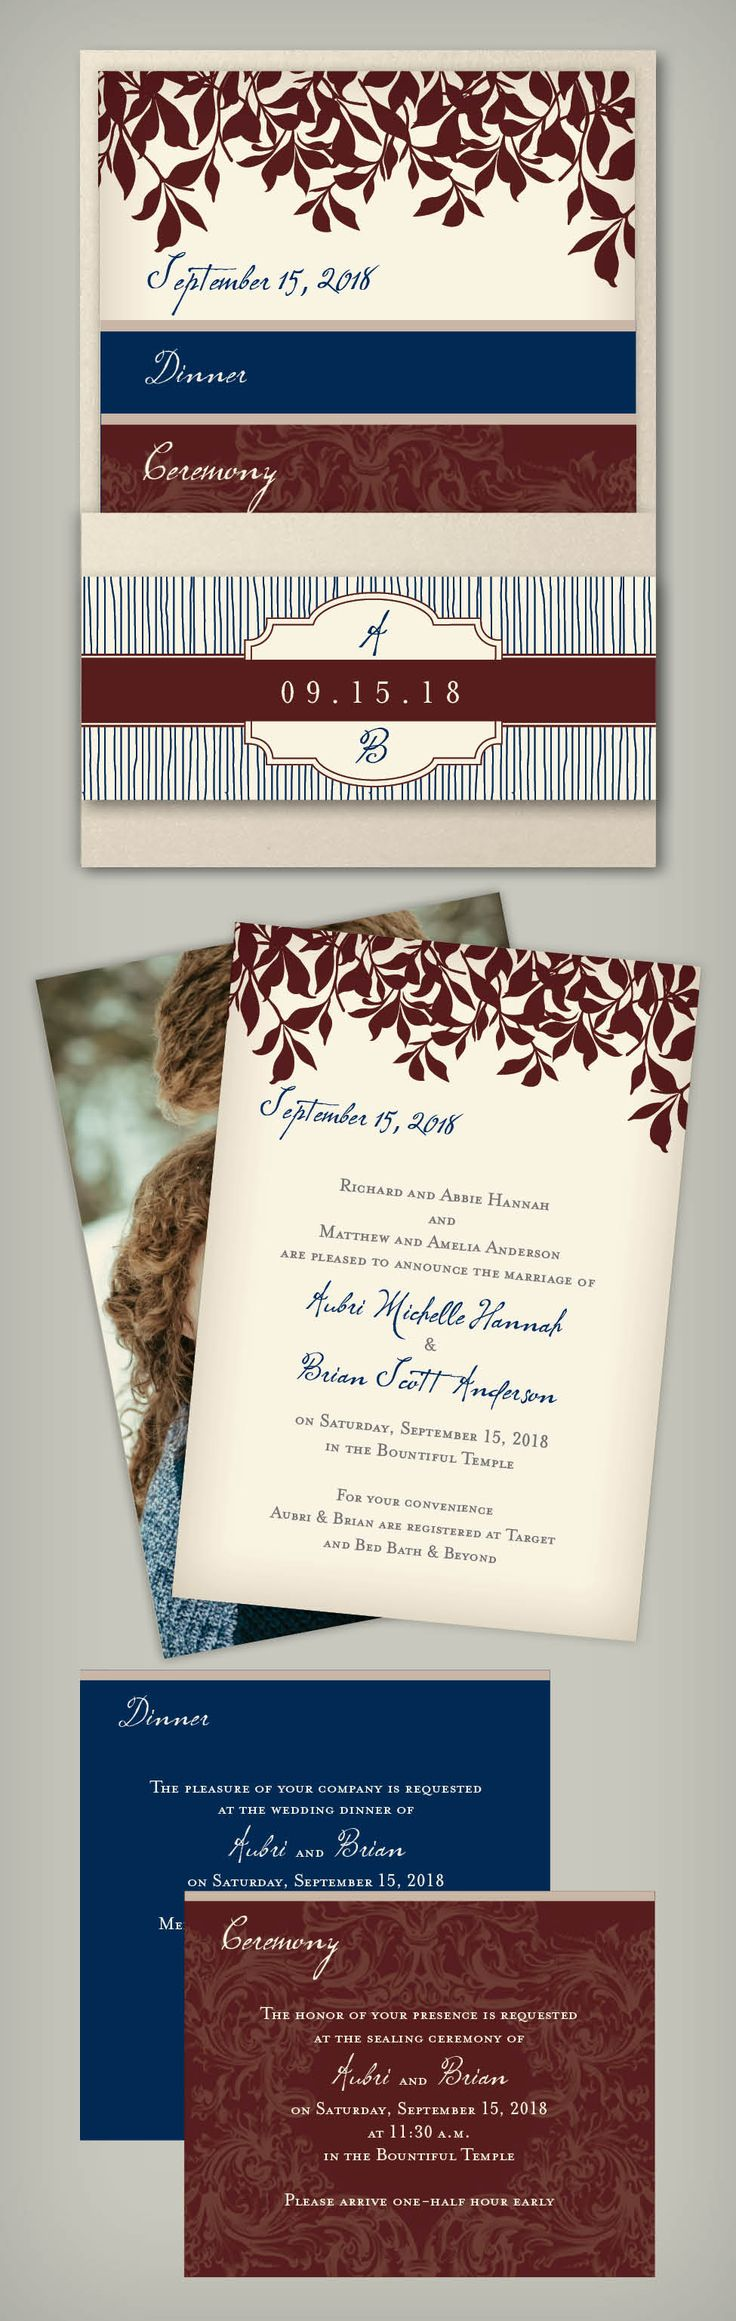 We are loving this foilage pocket invitation